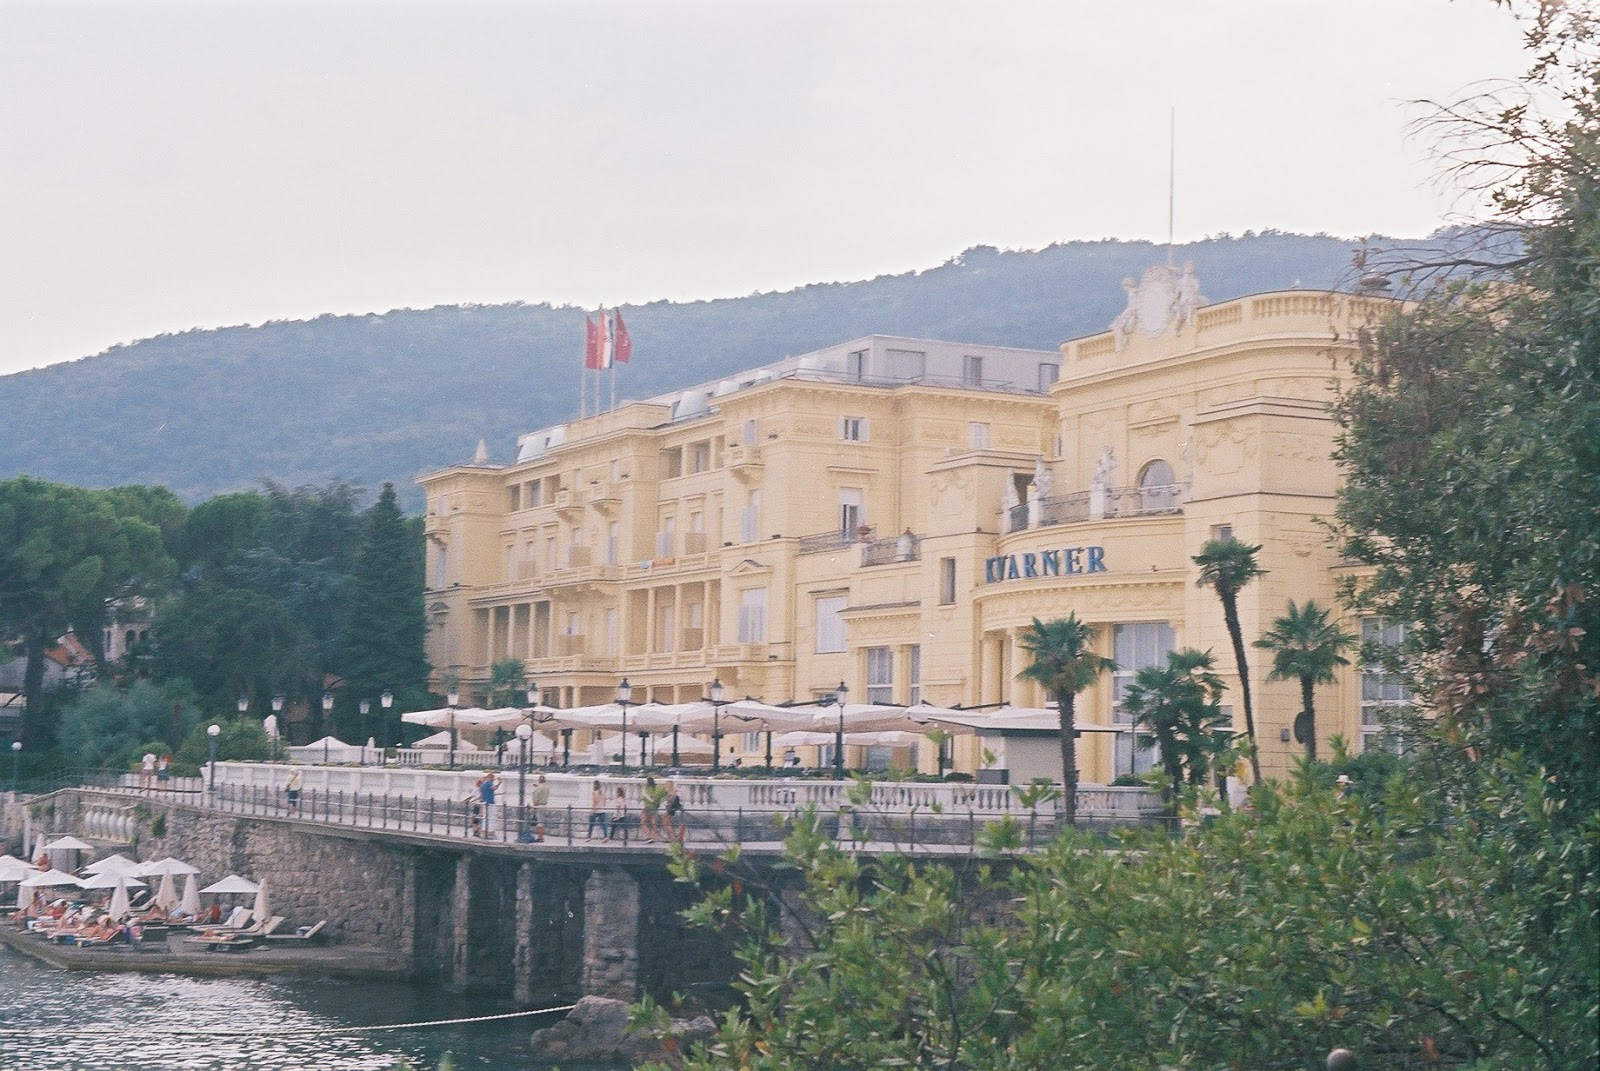 youarethepoet, filipa canic blog, filipa canic, you are the poet blog, minolta, analog, analogue photography, film photography, kvarner, opatija,